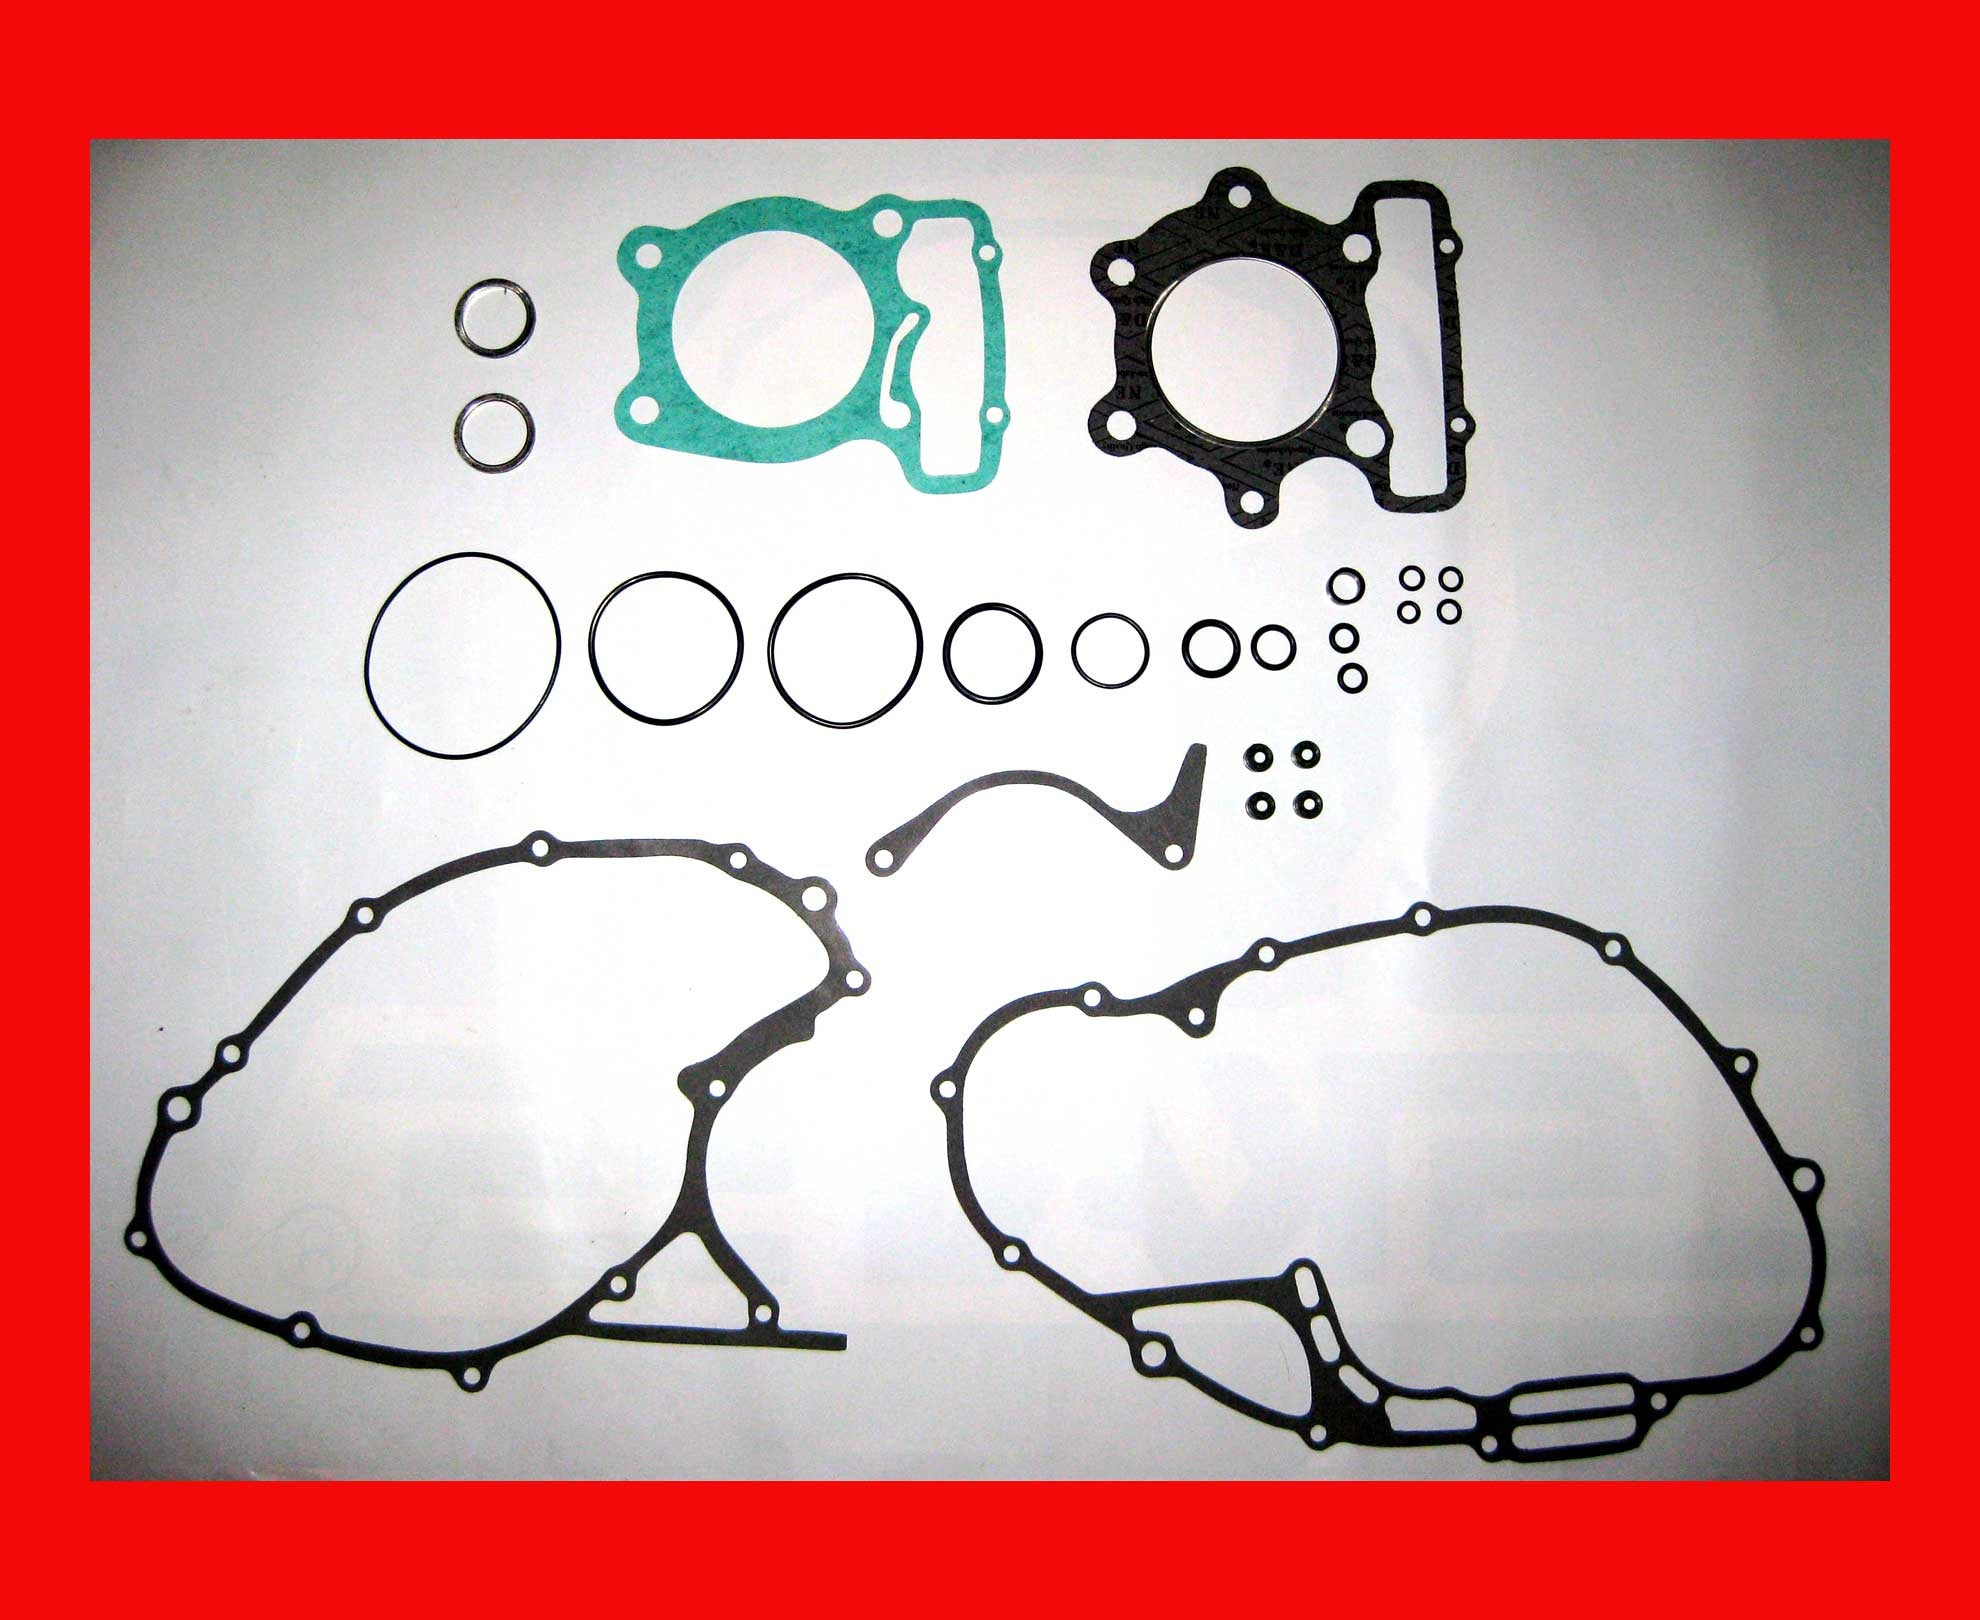 Honda XL250 XR250 Gasket Set! 1978 1979 1980 1981 250 Engine XL250S XR250R